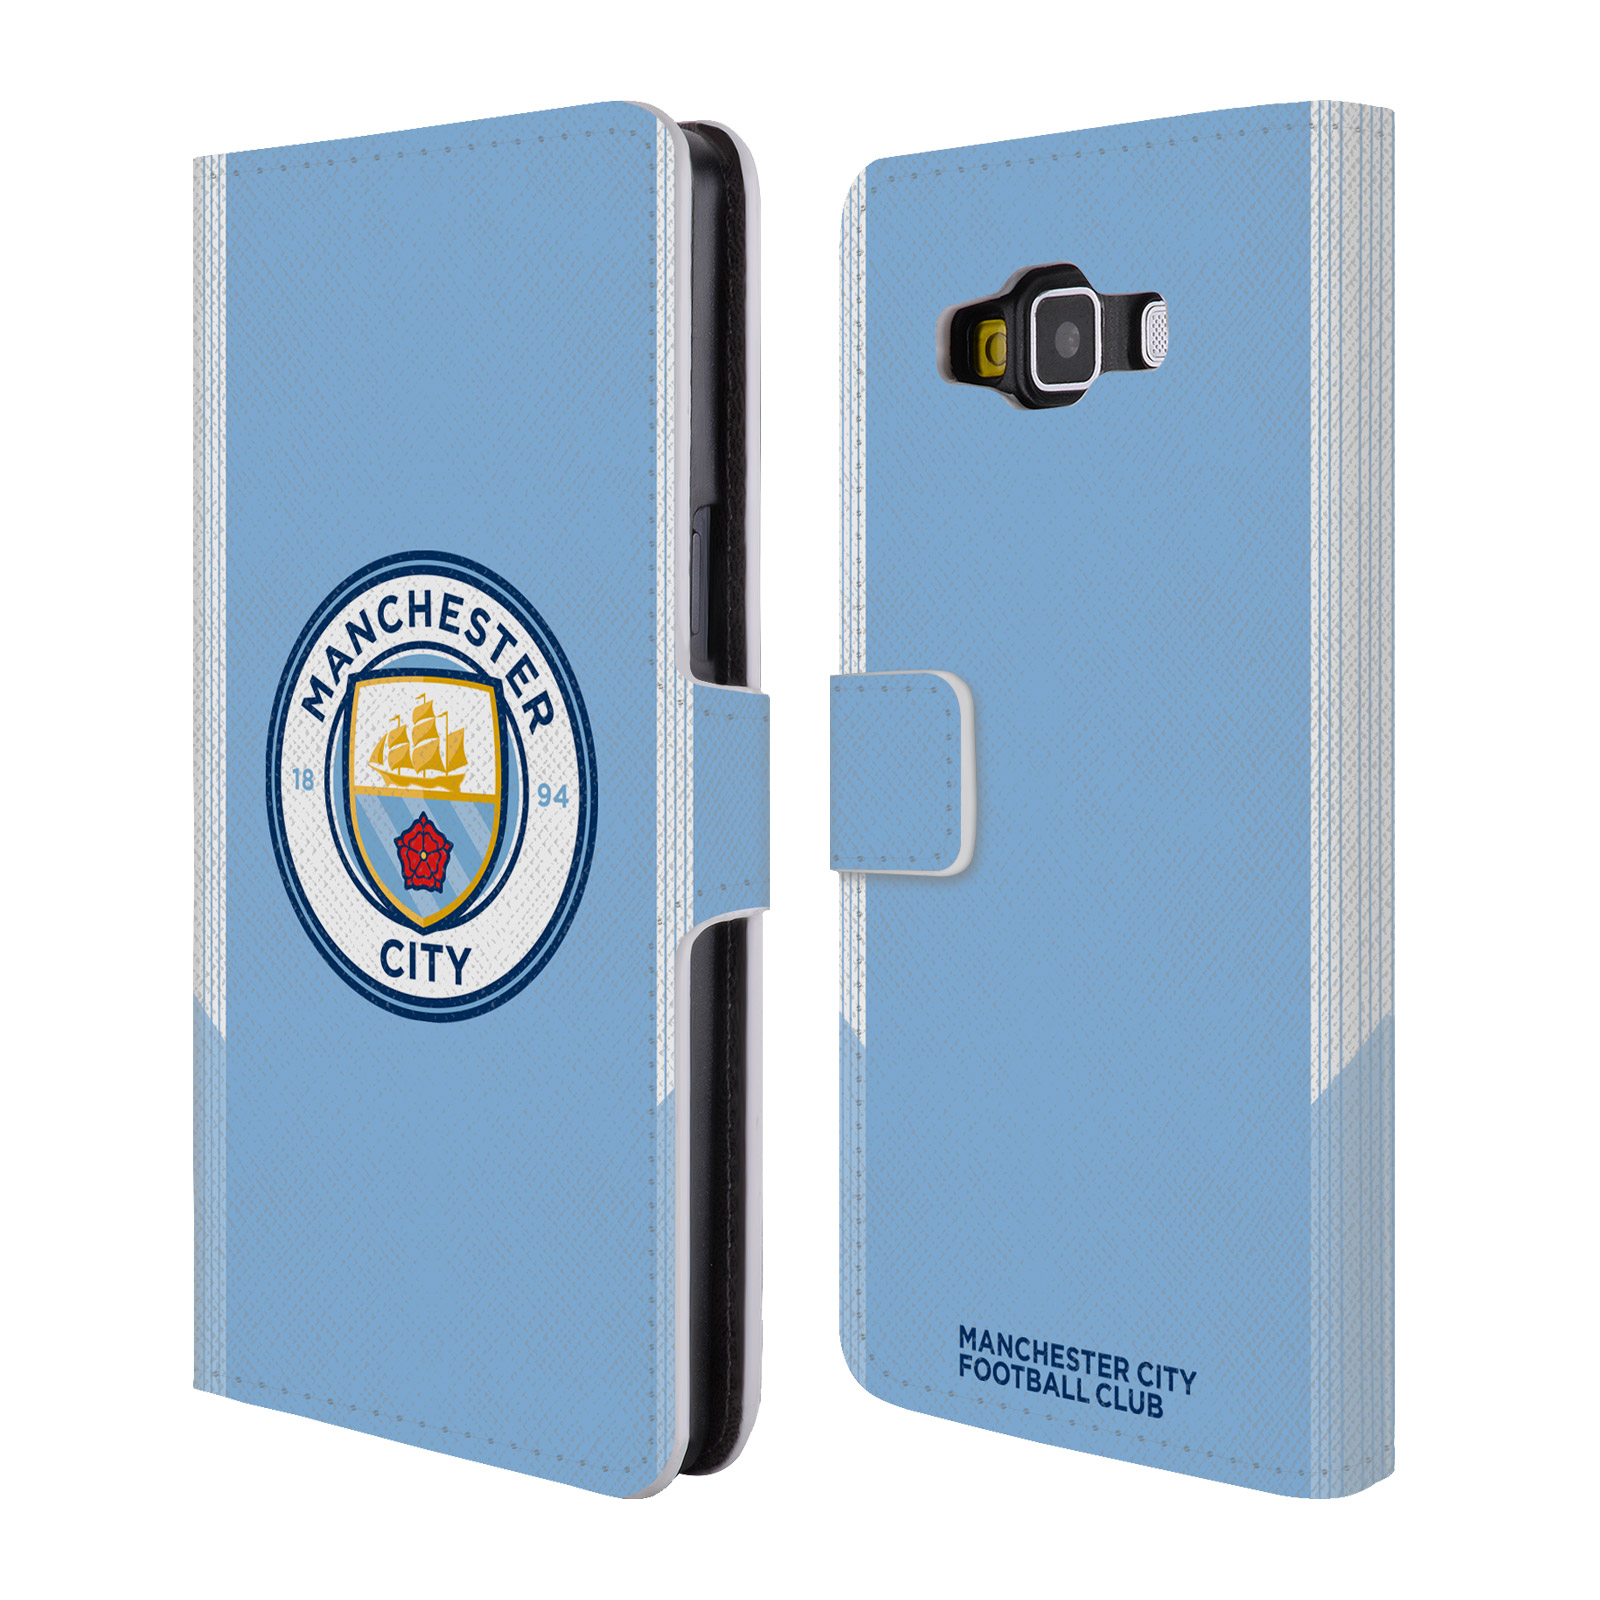 MAN-CITY-FC-BADGE-KIT-2017-18-LEATHER-BOOK-WALLET-CASE-FOR-SAMSUNG-PHONES-2